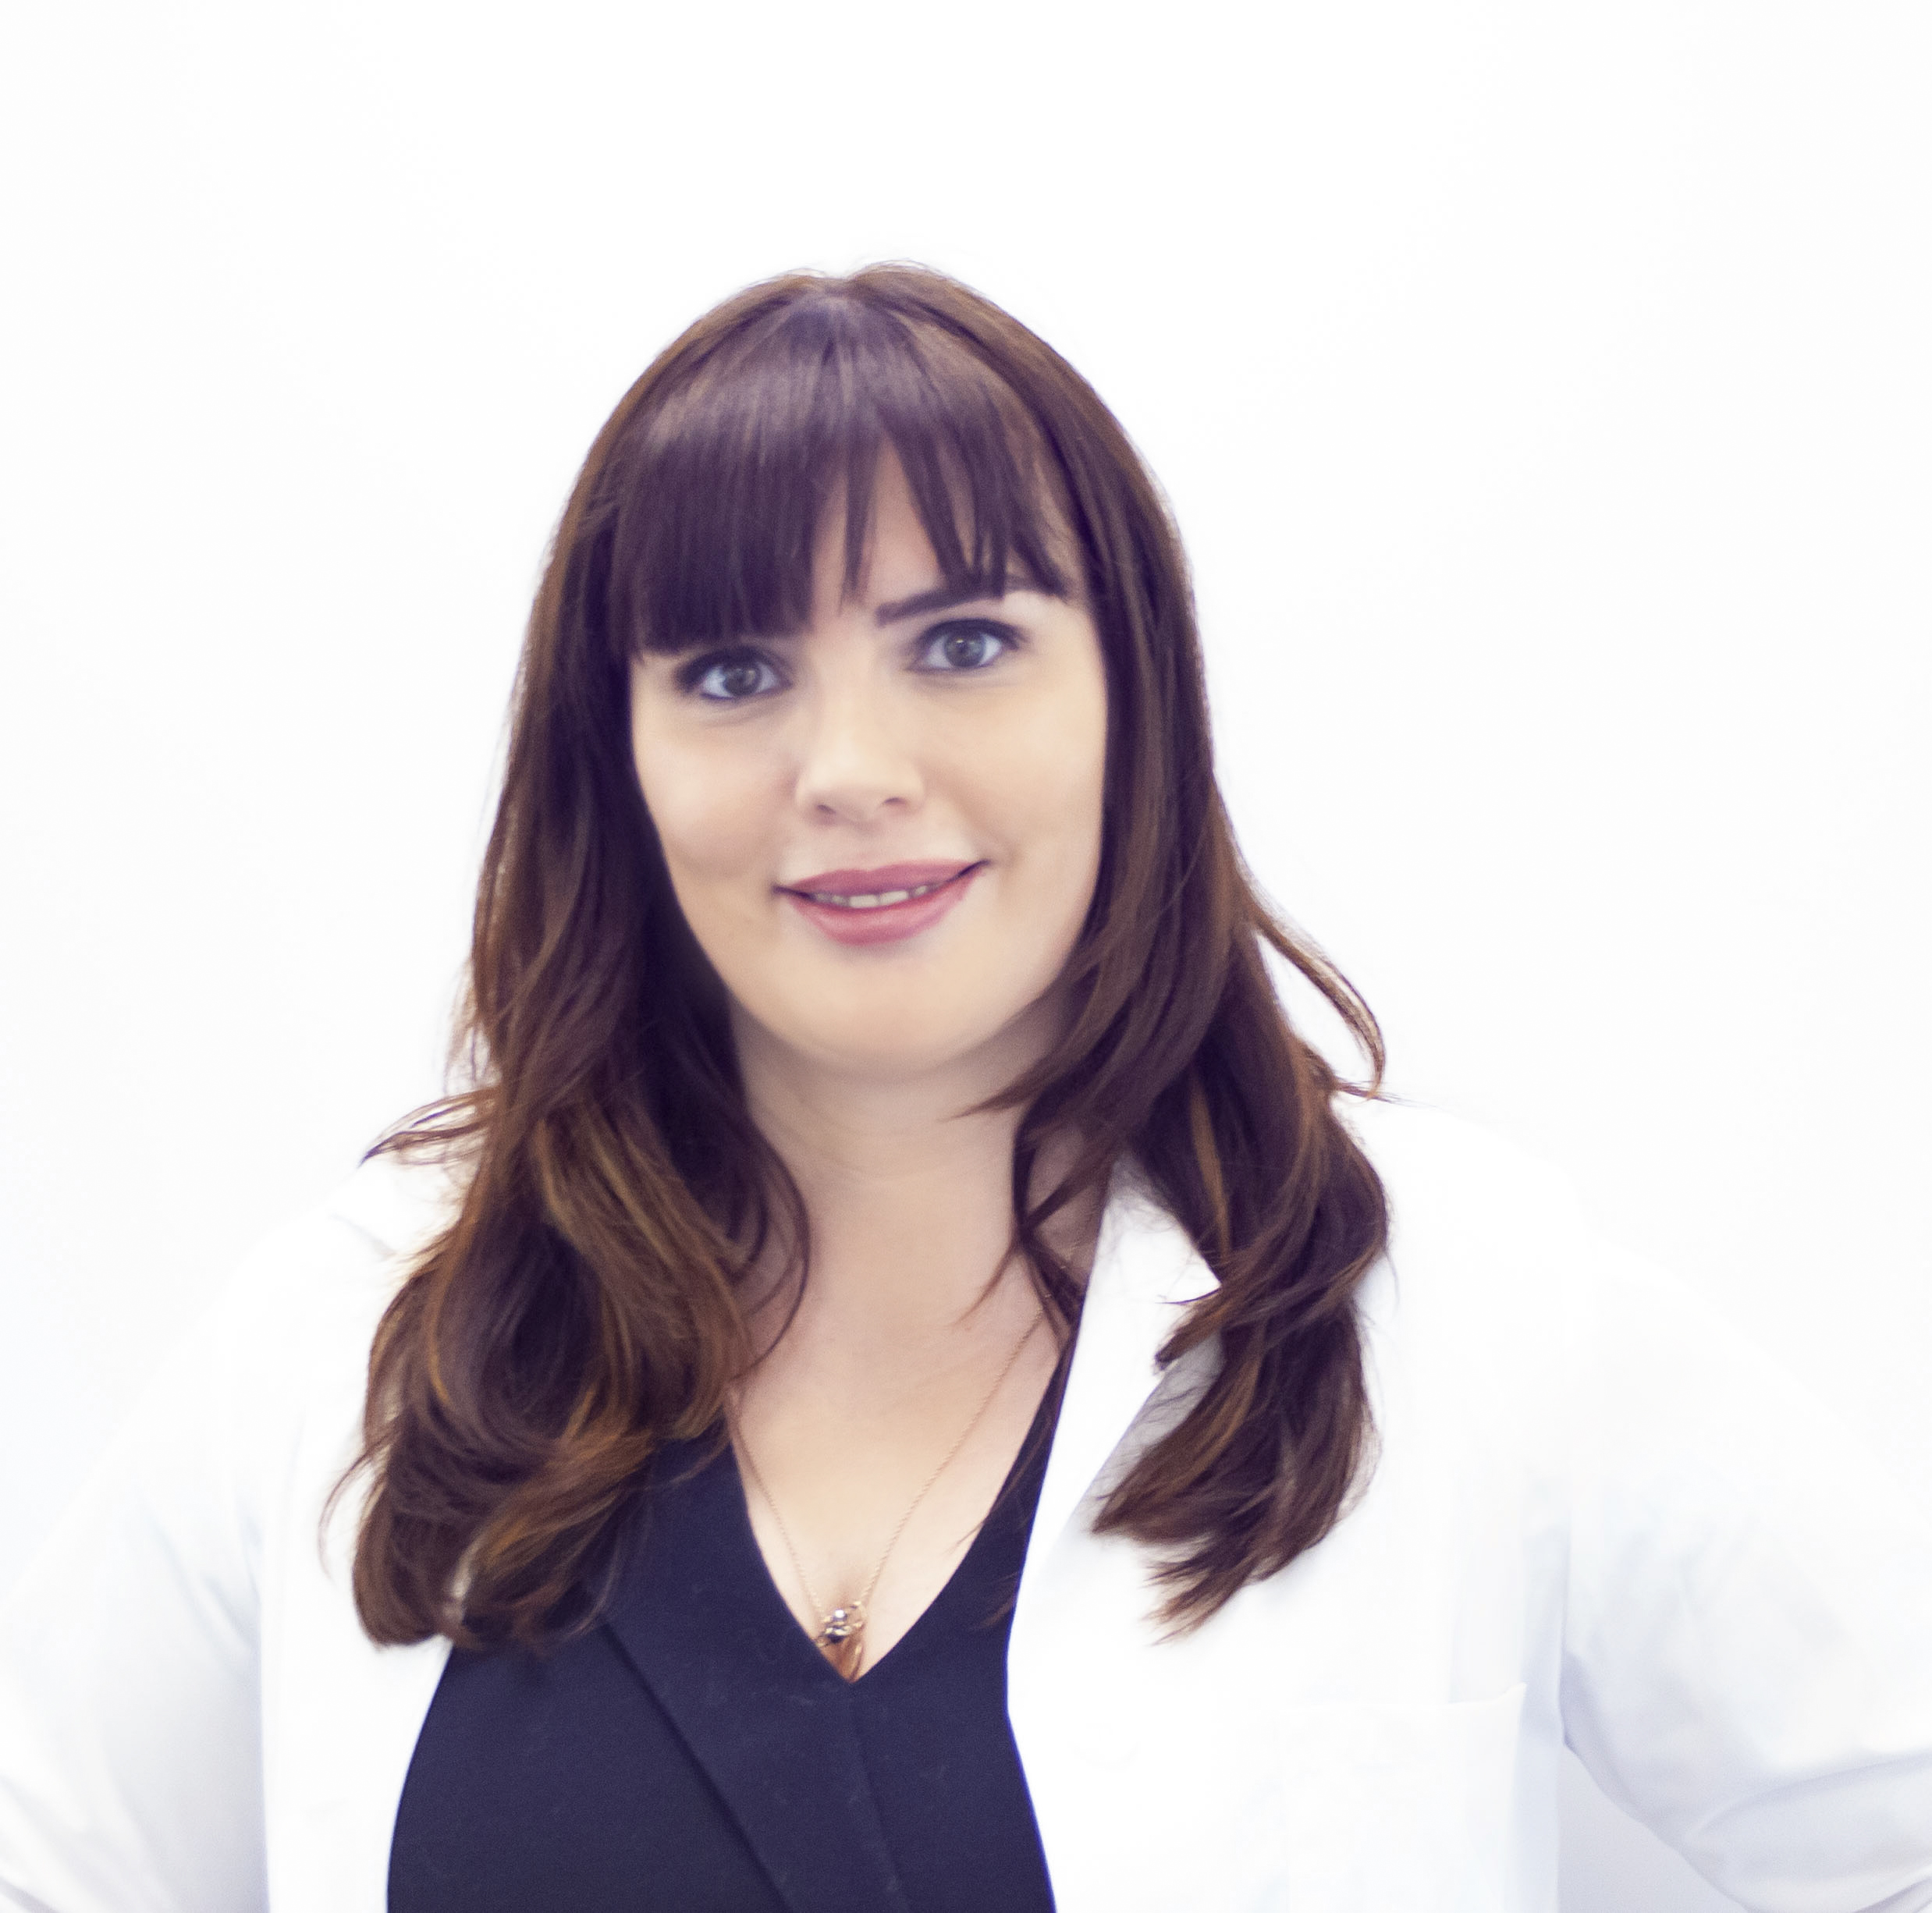 Dr Sophie appointed as 'Complications Lead' for Allergan.